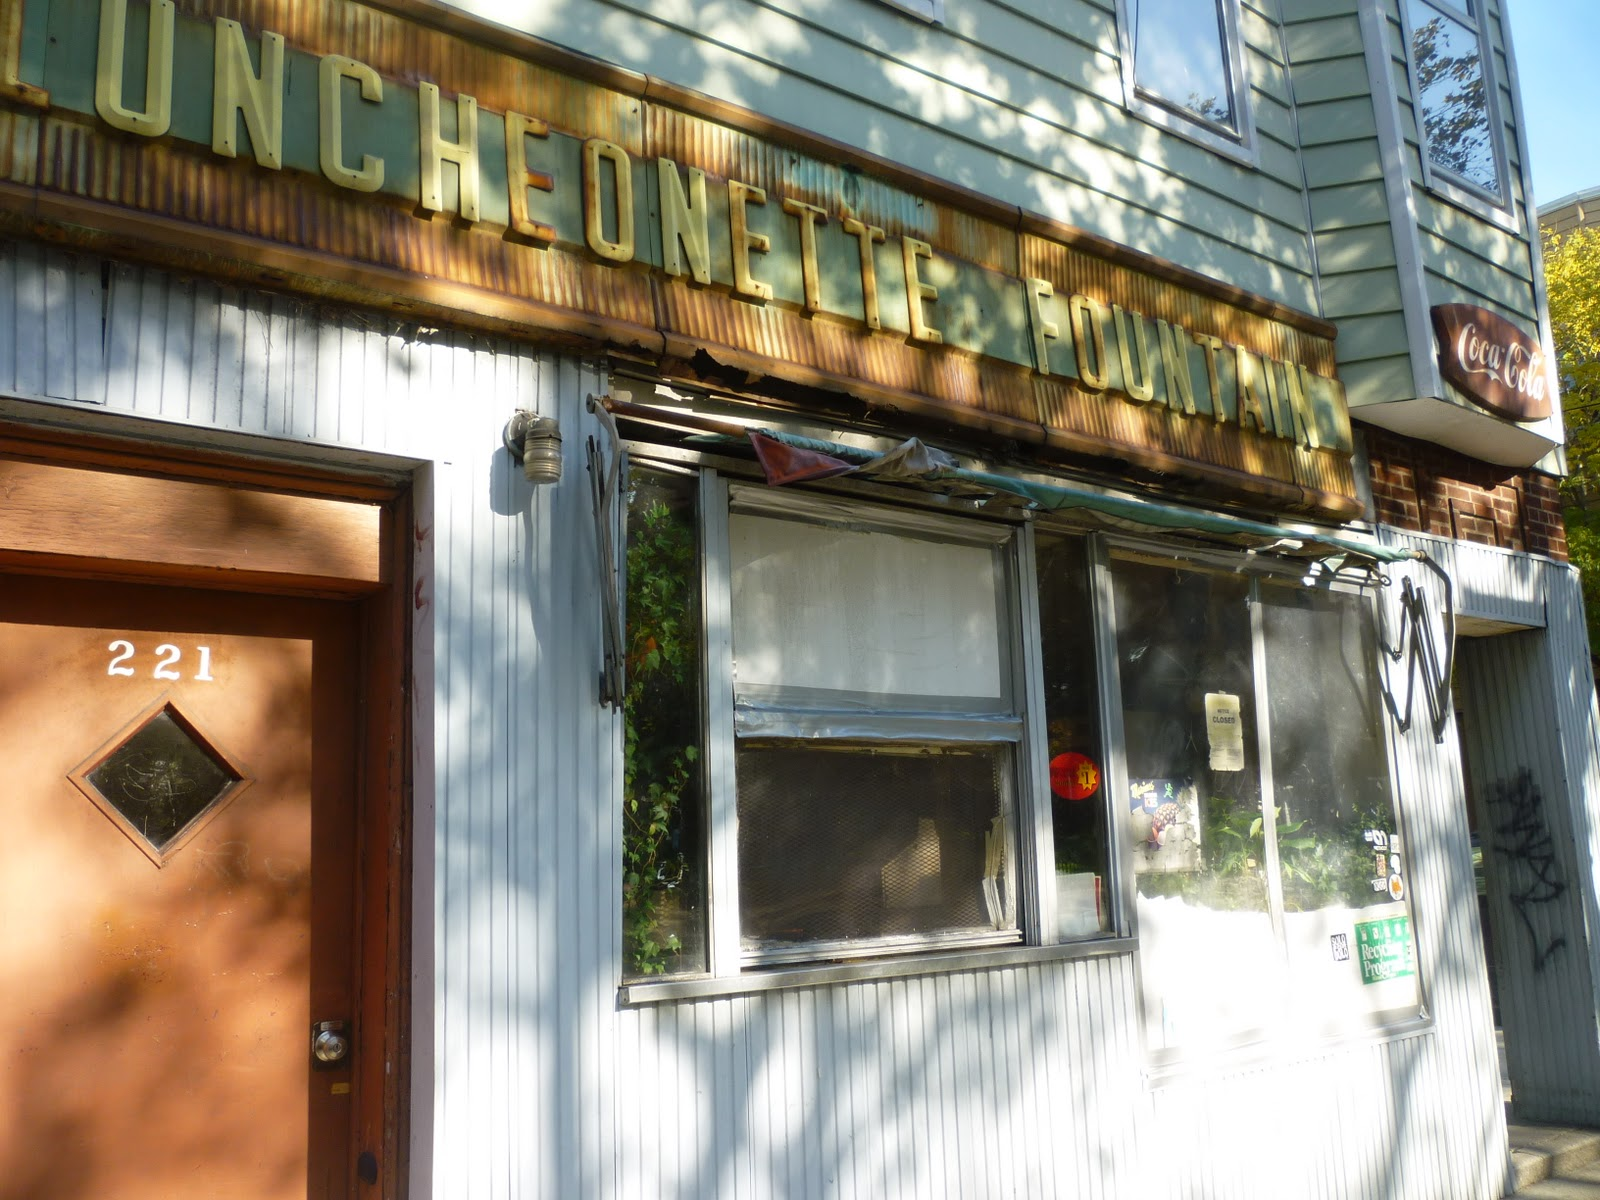 sunview luncheonette